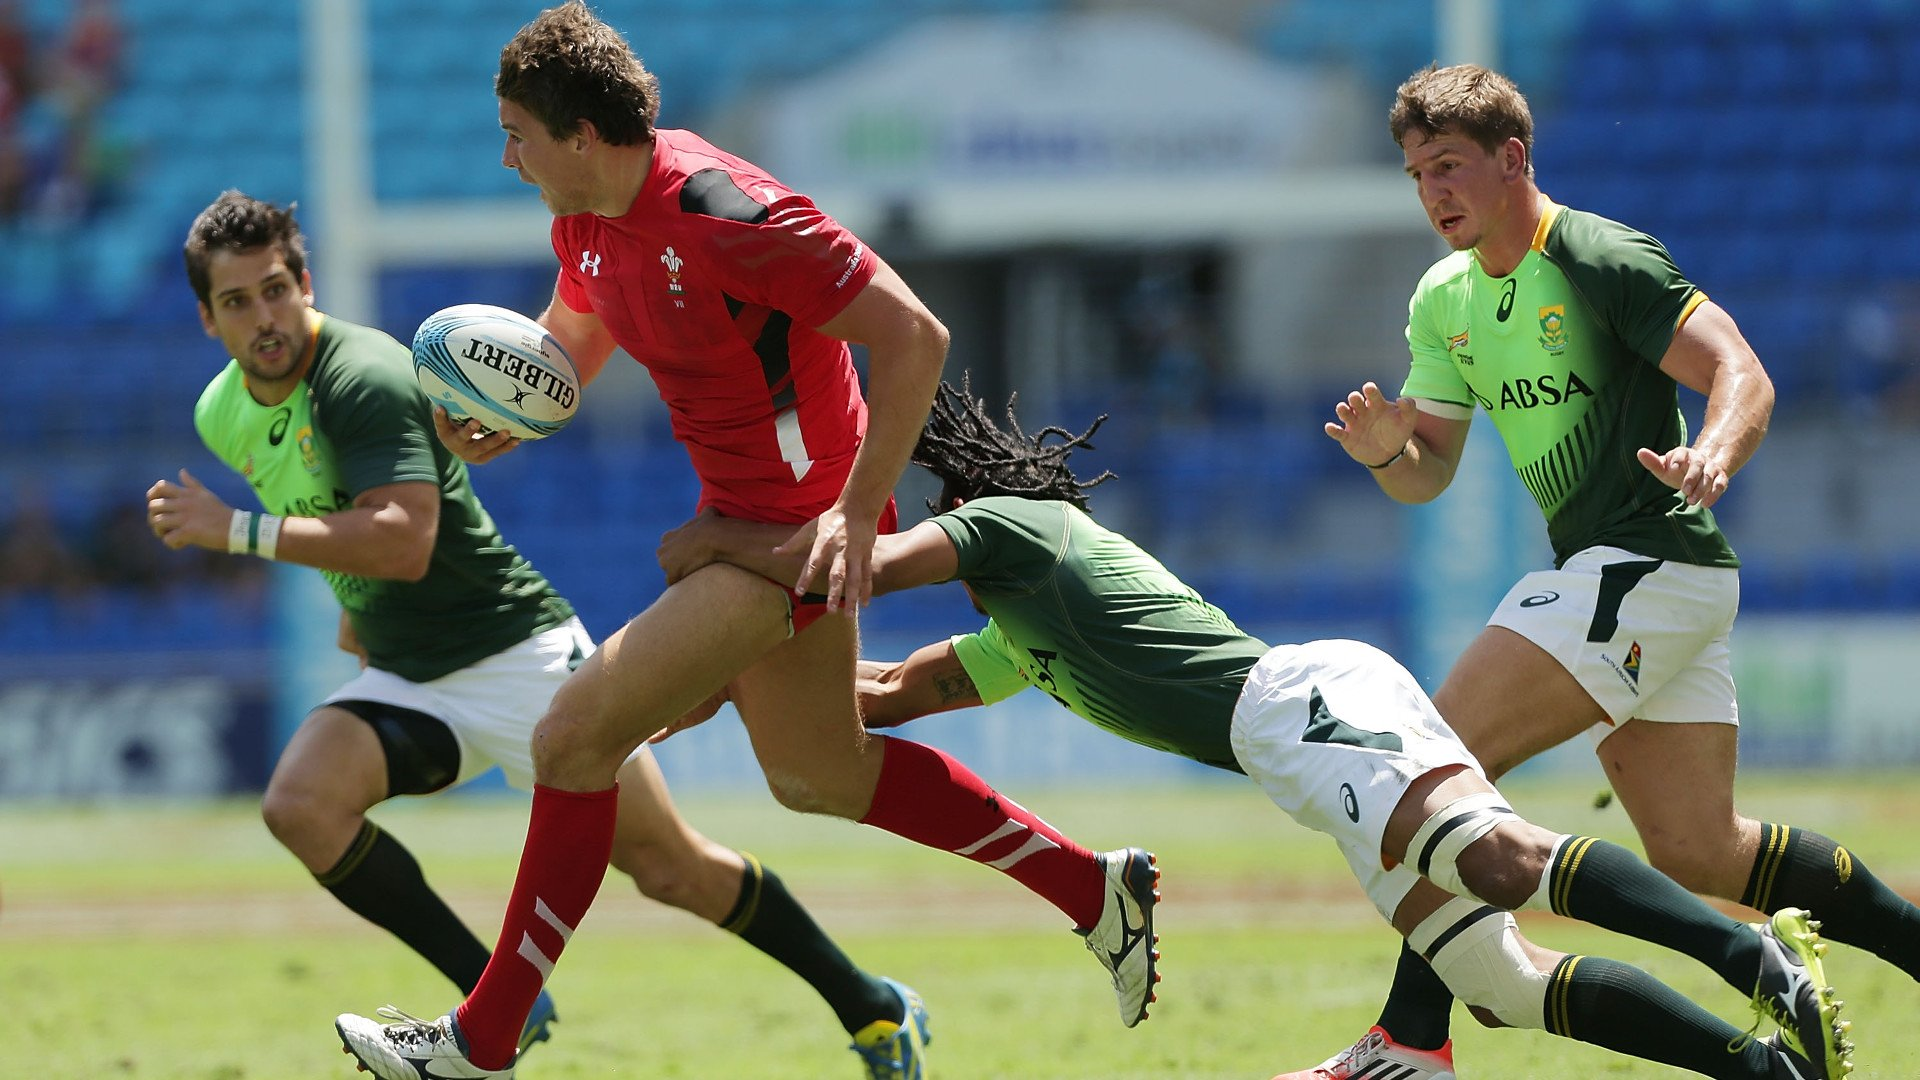 Cardiff Blues may have Alex Cuthbert's replacement in hulking Welsh 7s star Jason Harries